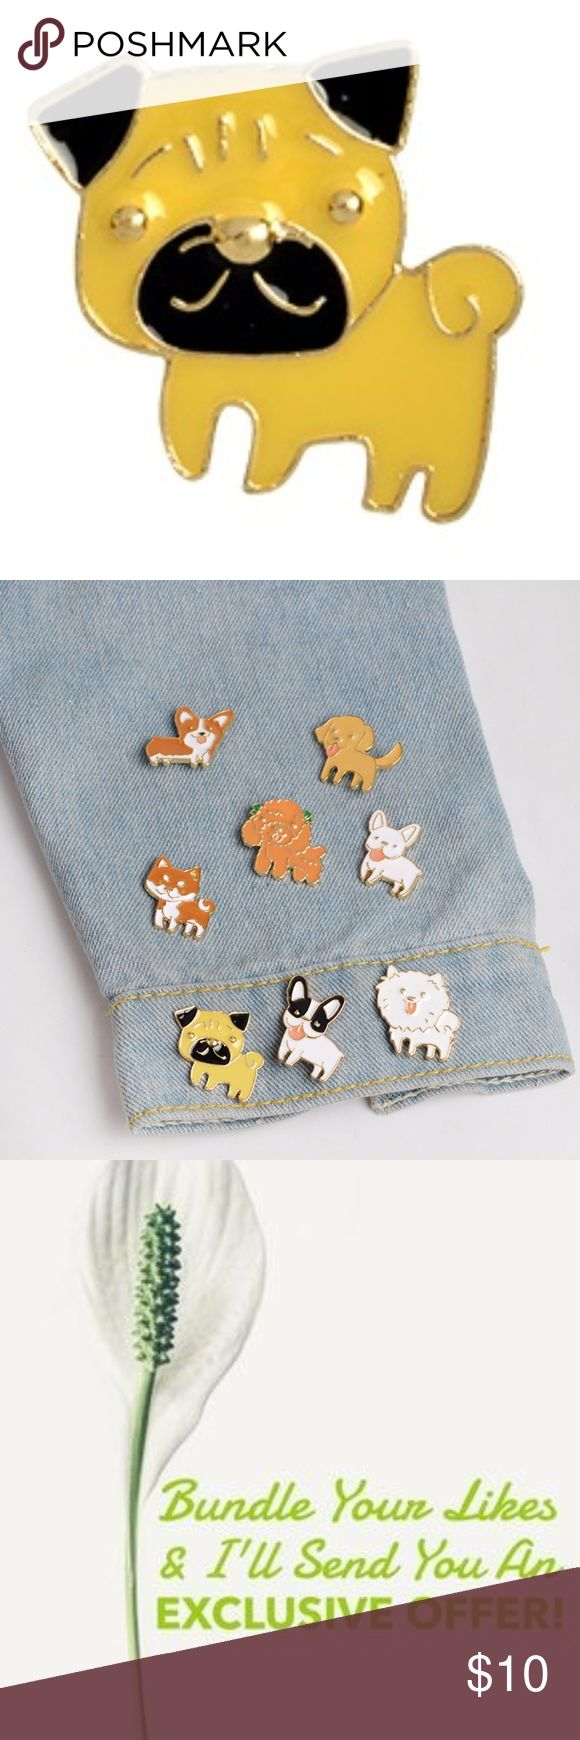 Tan Enamel Pug Puppy Pin Quantity Available: 3 Accessories